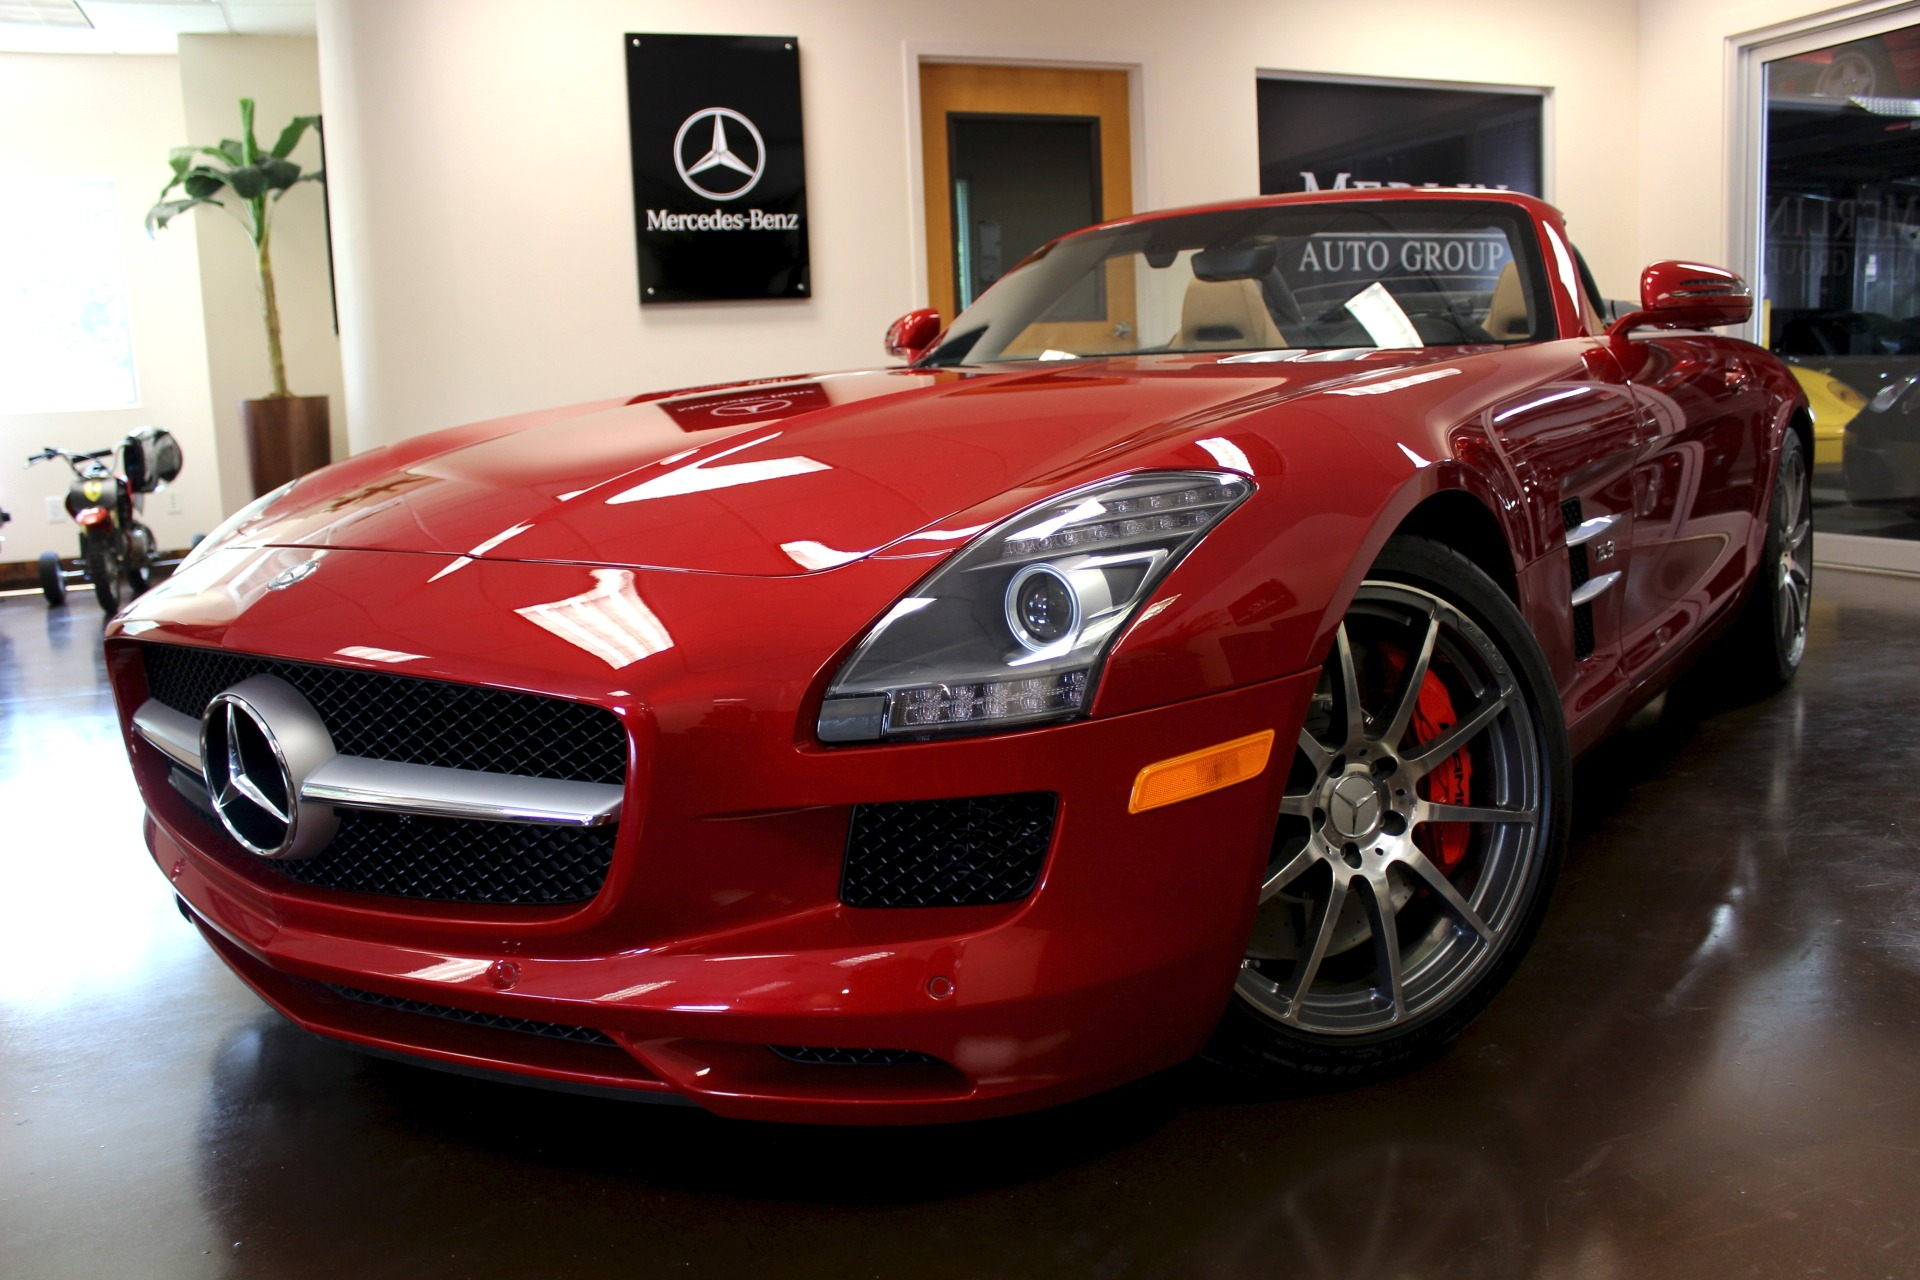 Used 2012 mercedes benz sls stock p3669 ultra luxury car for 2012 mercedes benz sls amg